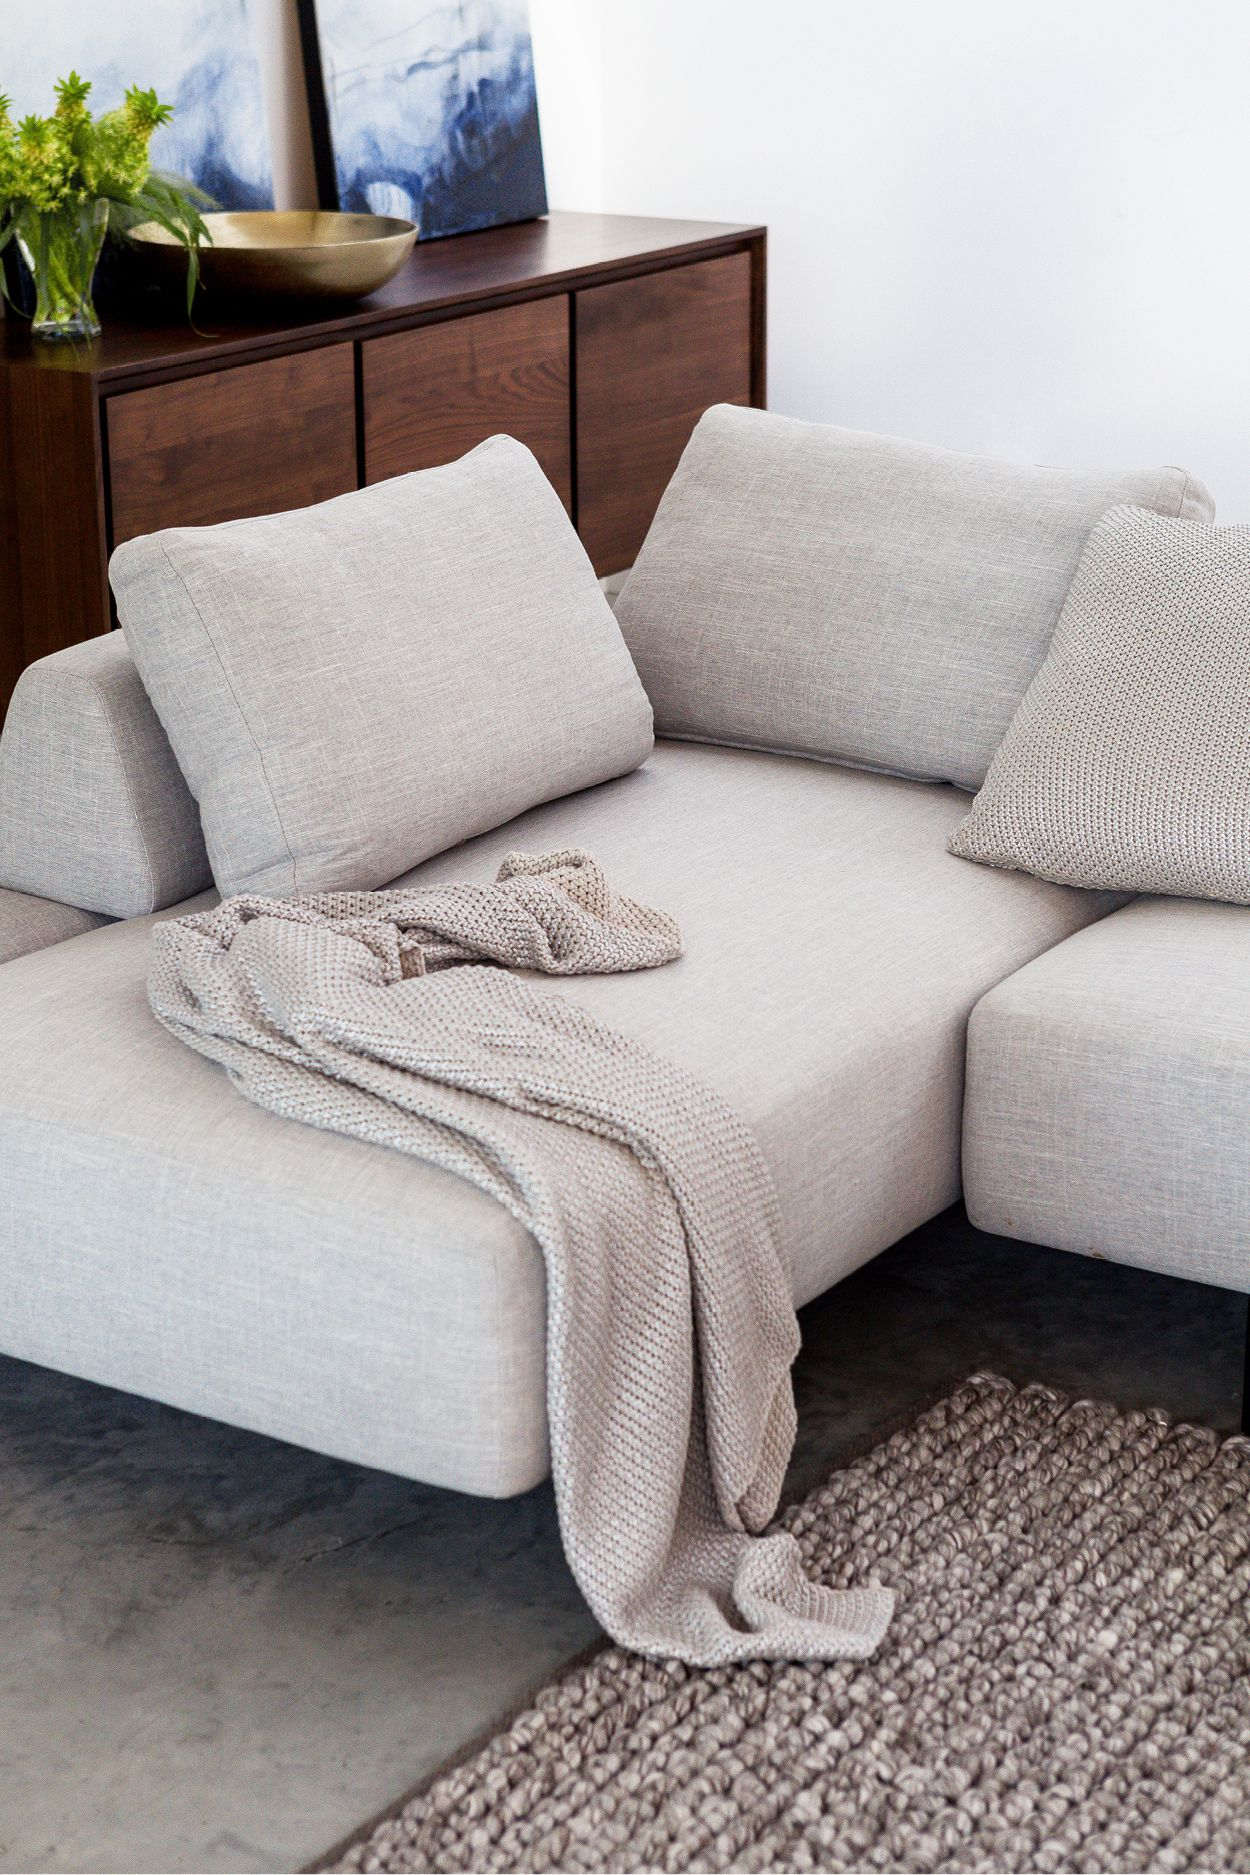 The holidays require a lot of flexibility the divan sofa has just that with its moveable backrest system built for endless configuration possibilities